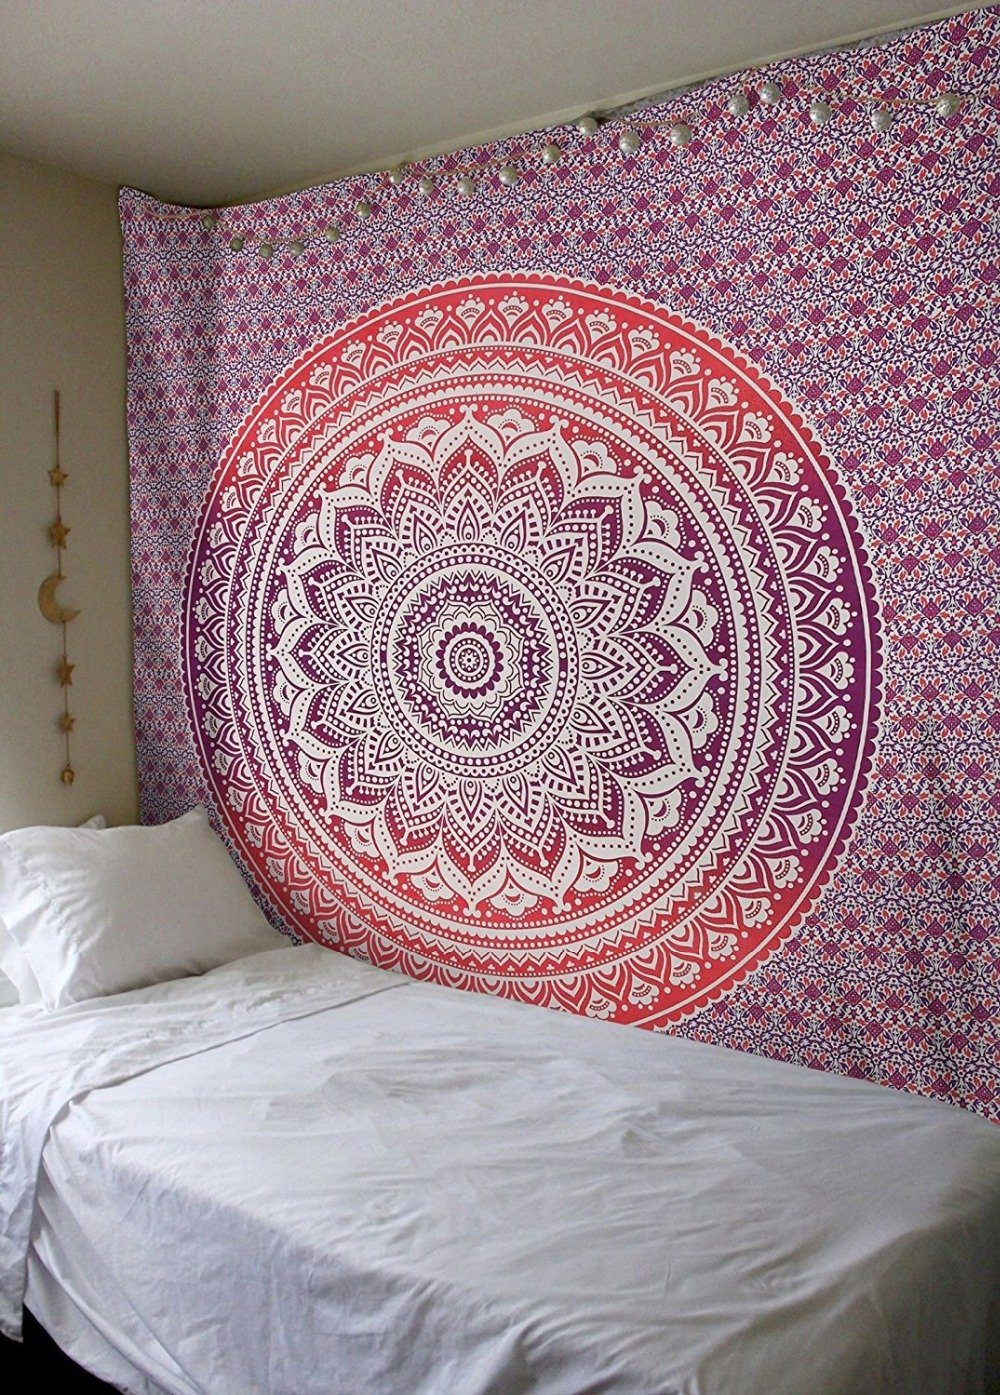 Purple Indian Mandala Hindu Wall Tapestry - 5x7ft - Tapestry Room